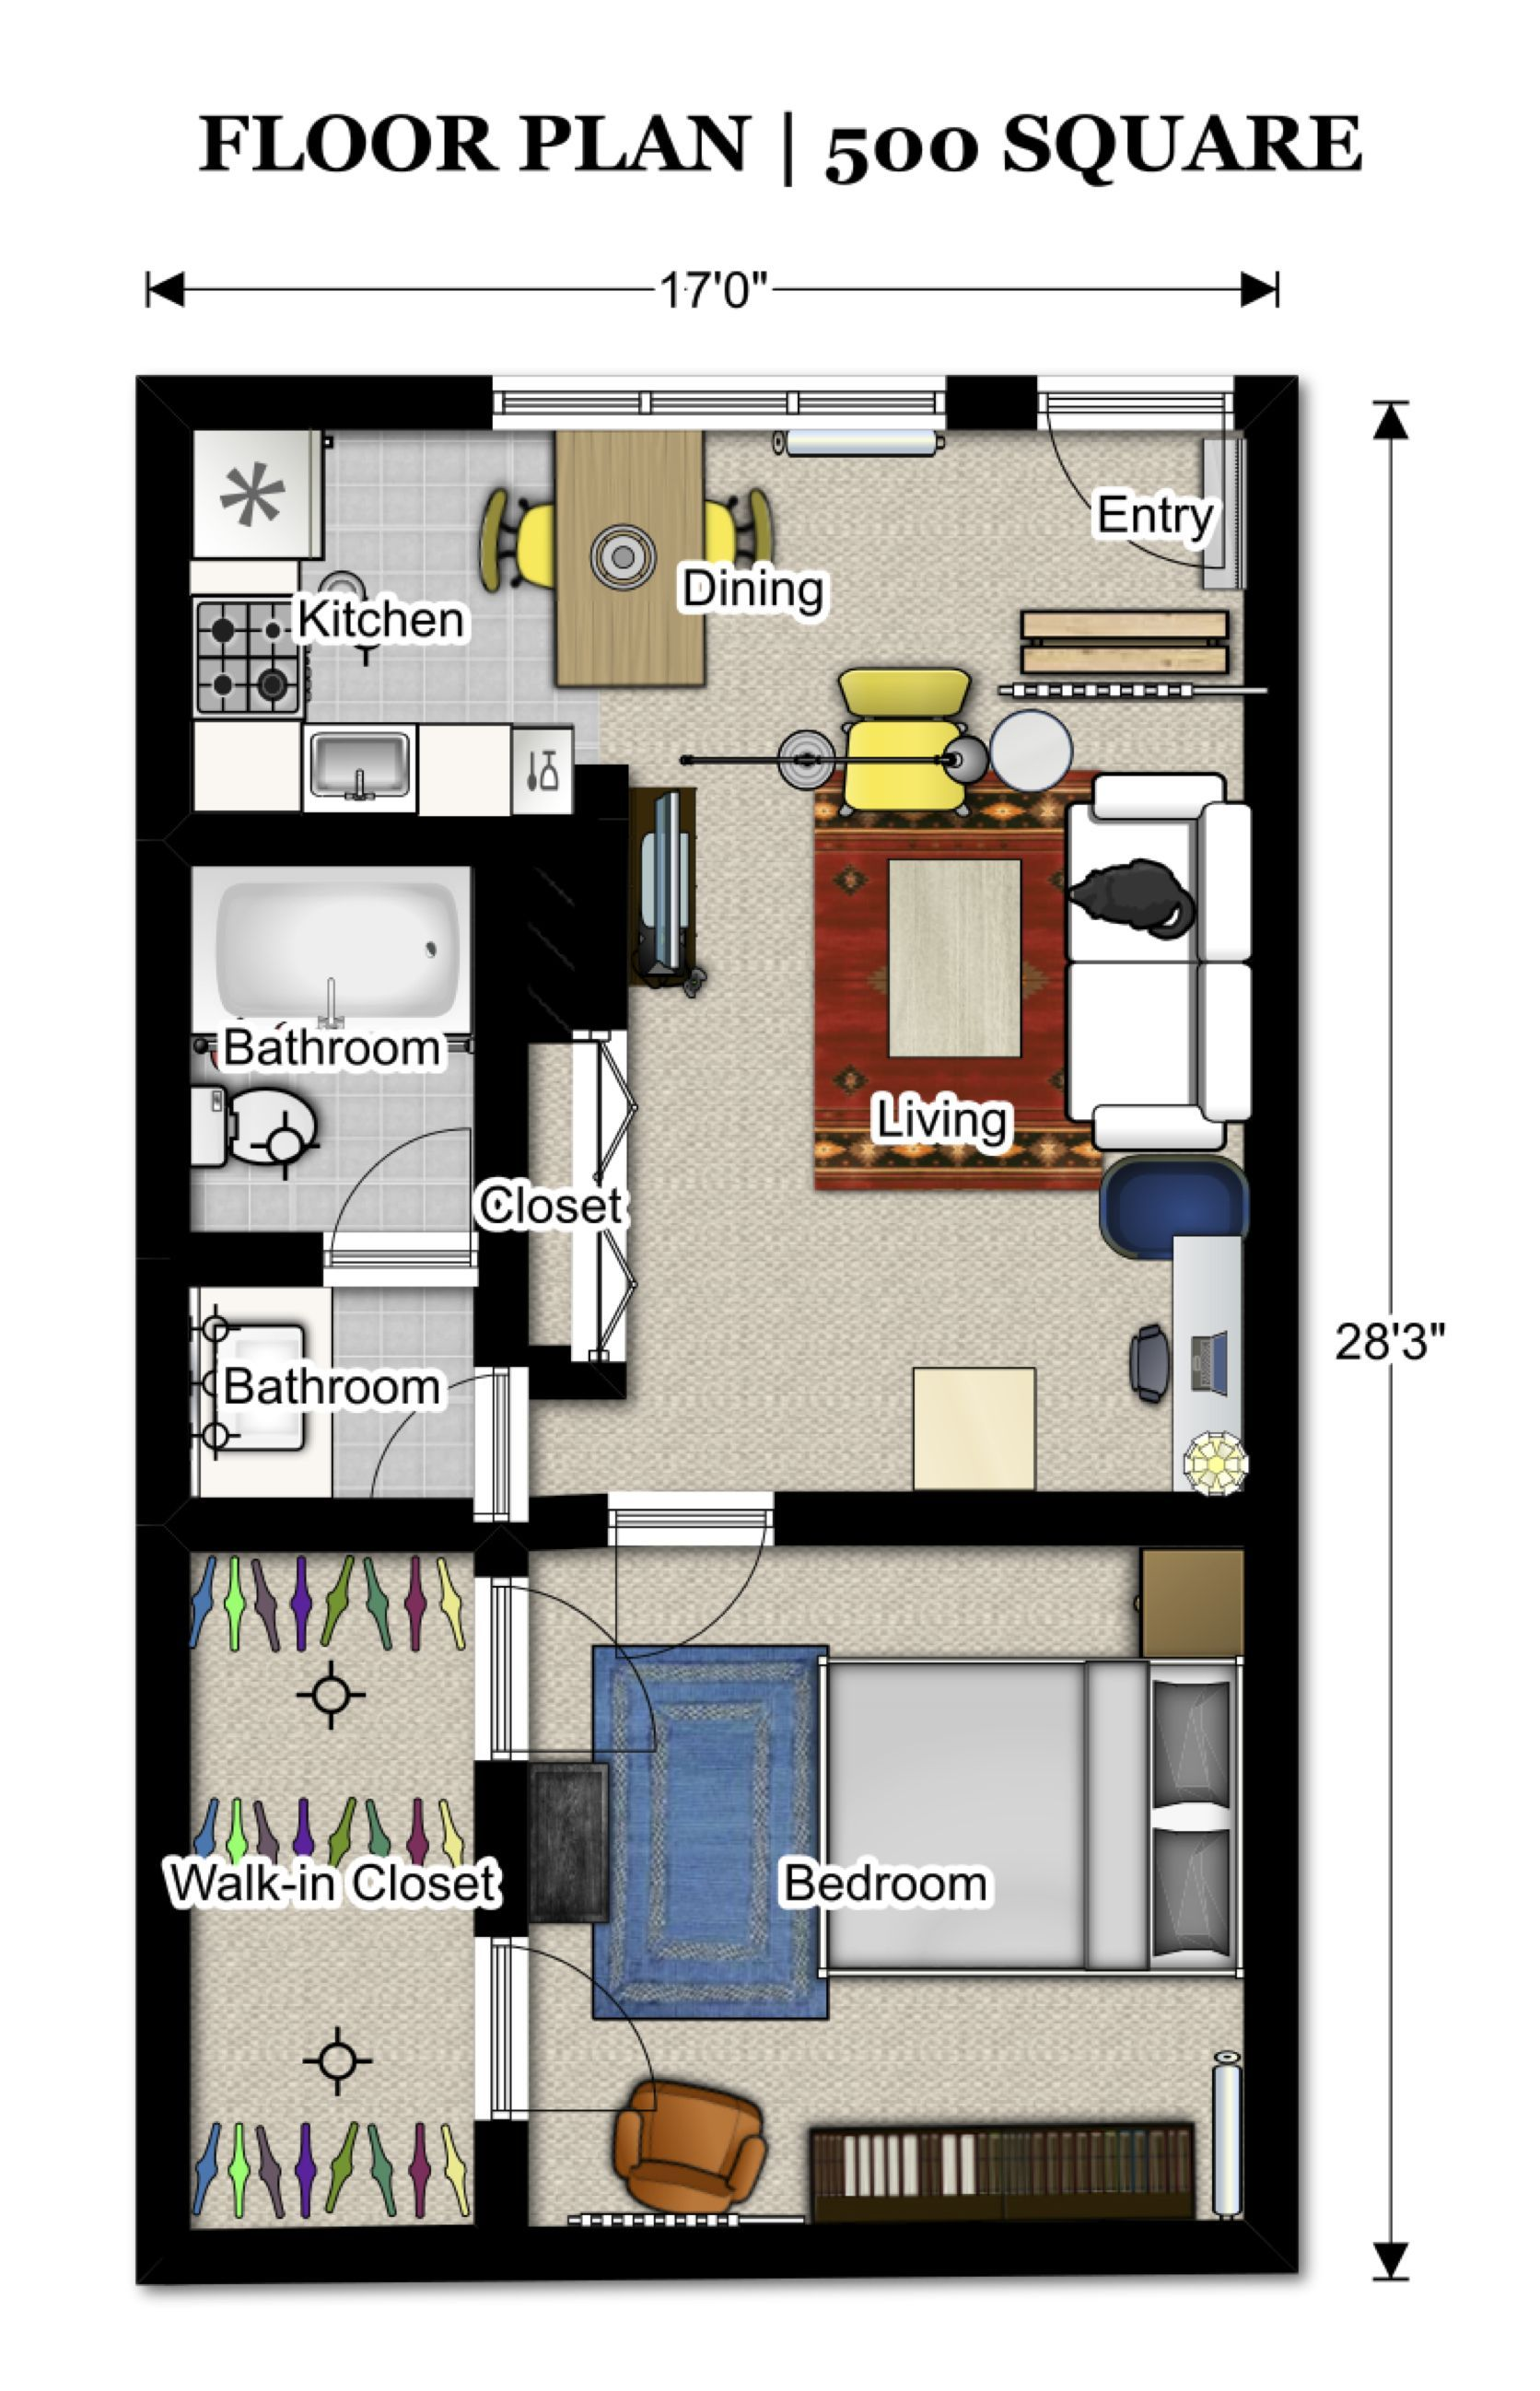 Best Of 500 Square Foot Apartment Floor Plans And Description In 2020 Small House Floor Plans Studio Apartment Floor Plans Apartment Floor Plans